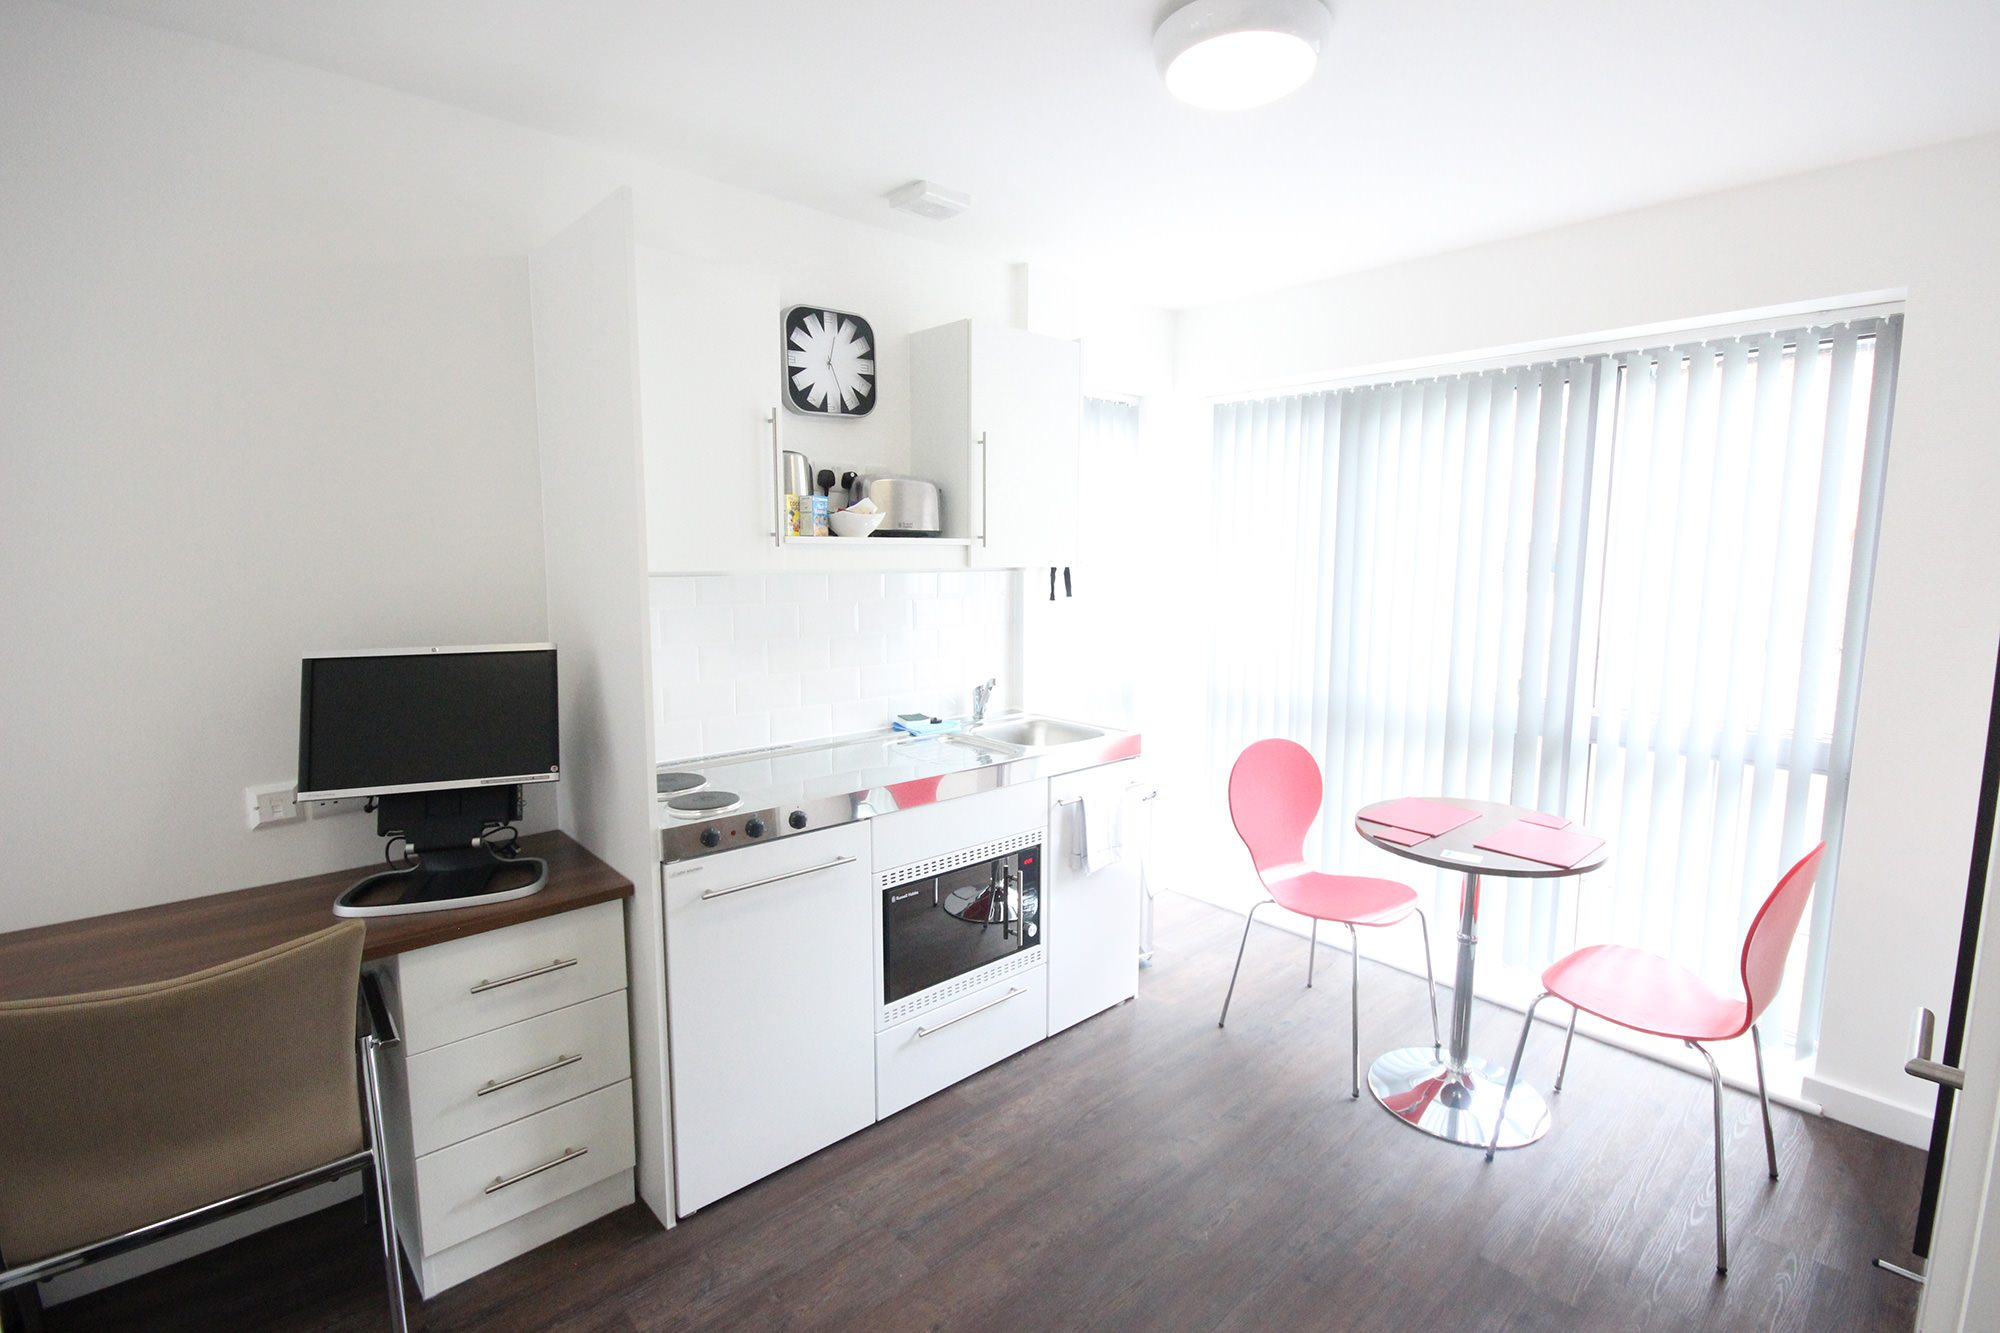 Park-House-Luton-Serviced-Apartments-UK---Urban-Stay-corporate-accommodation---kitchen-and-dining-area